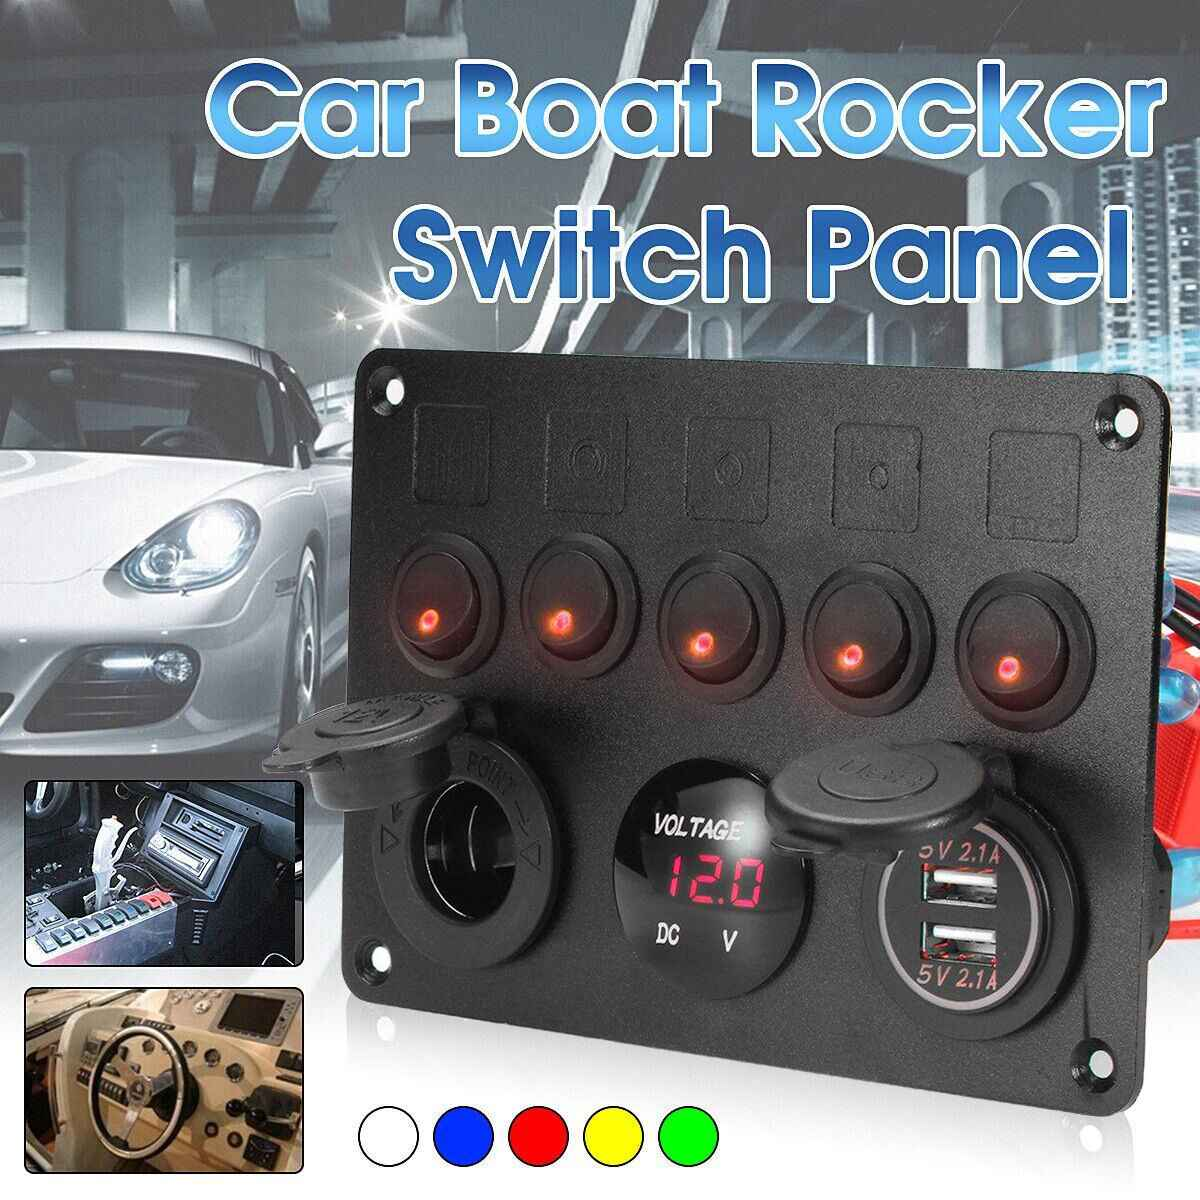 5 Gang Switch Panel Auto Car Marine Boat LED Rocker Switch Panel Voltmeter Dual USB Power Charger Socket Rear With 15A Fuse